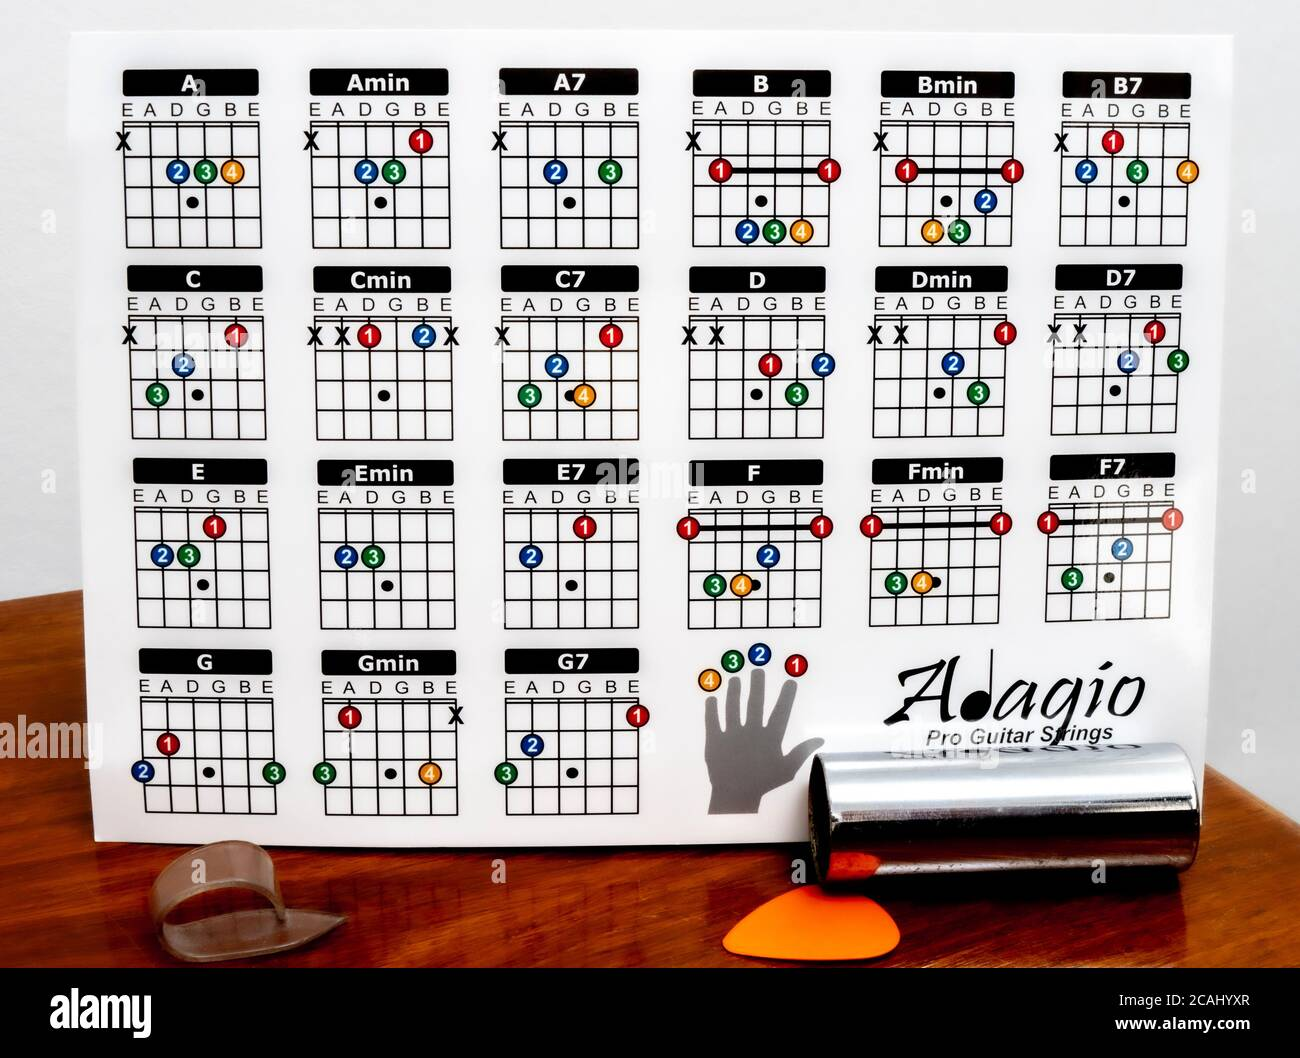 Adagio guitar chord chart with accessories in front. The six ...